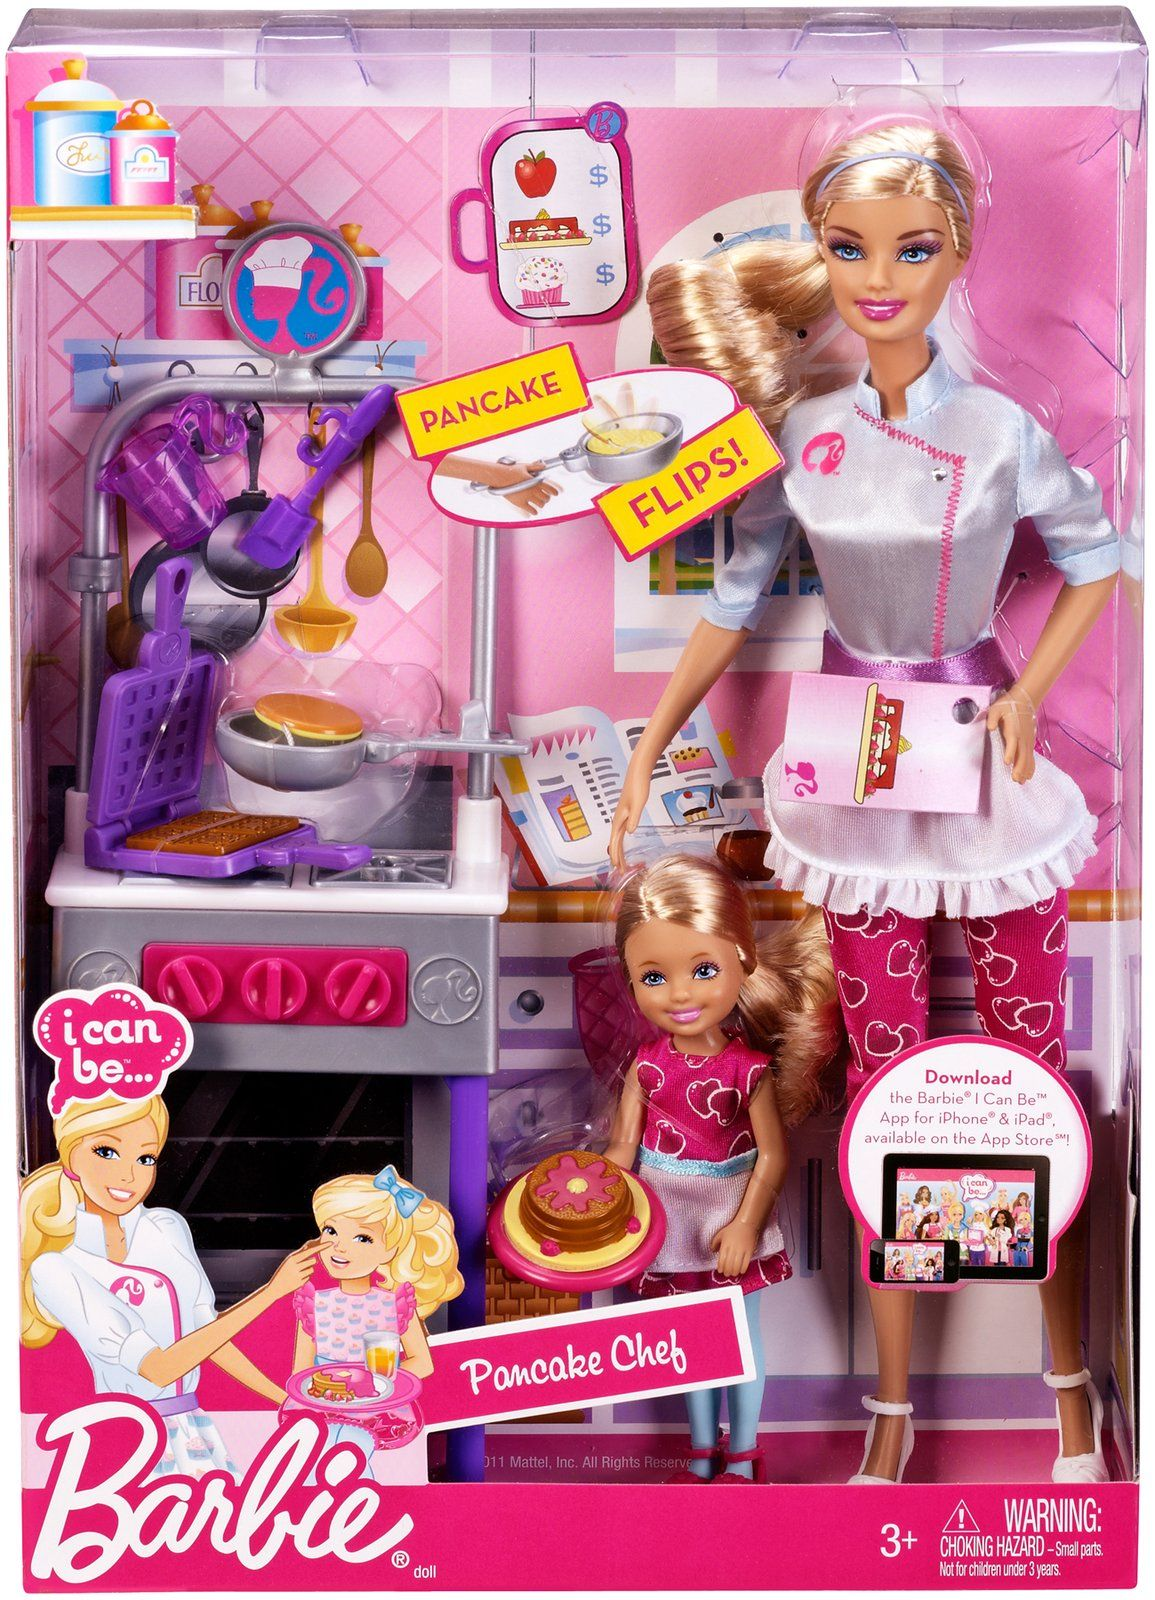 Barbie deluxe furniture stovetop to tabletop kitchen doll target - Barbie I Can Be Pancake Chef Playset Free Shipping Http